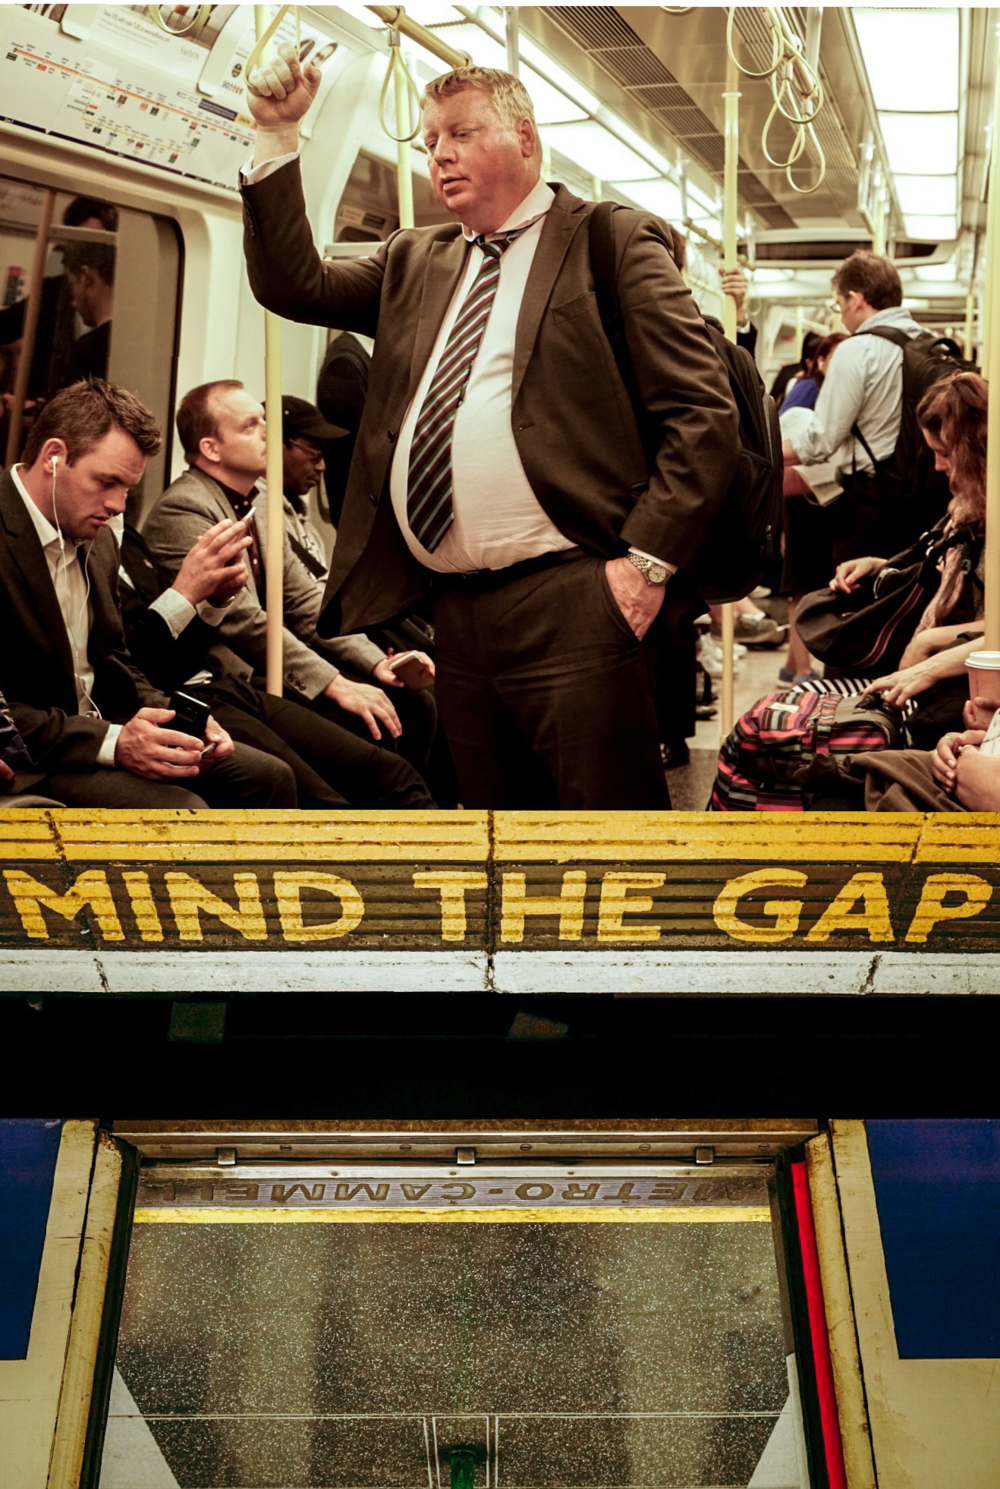 Mind the Gap, Sleppy Man London, U.K.